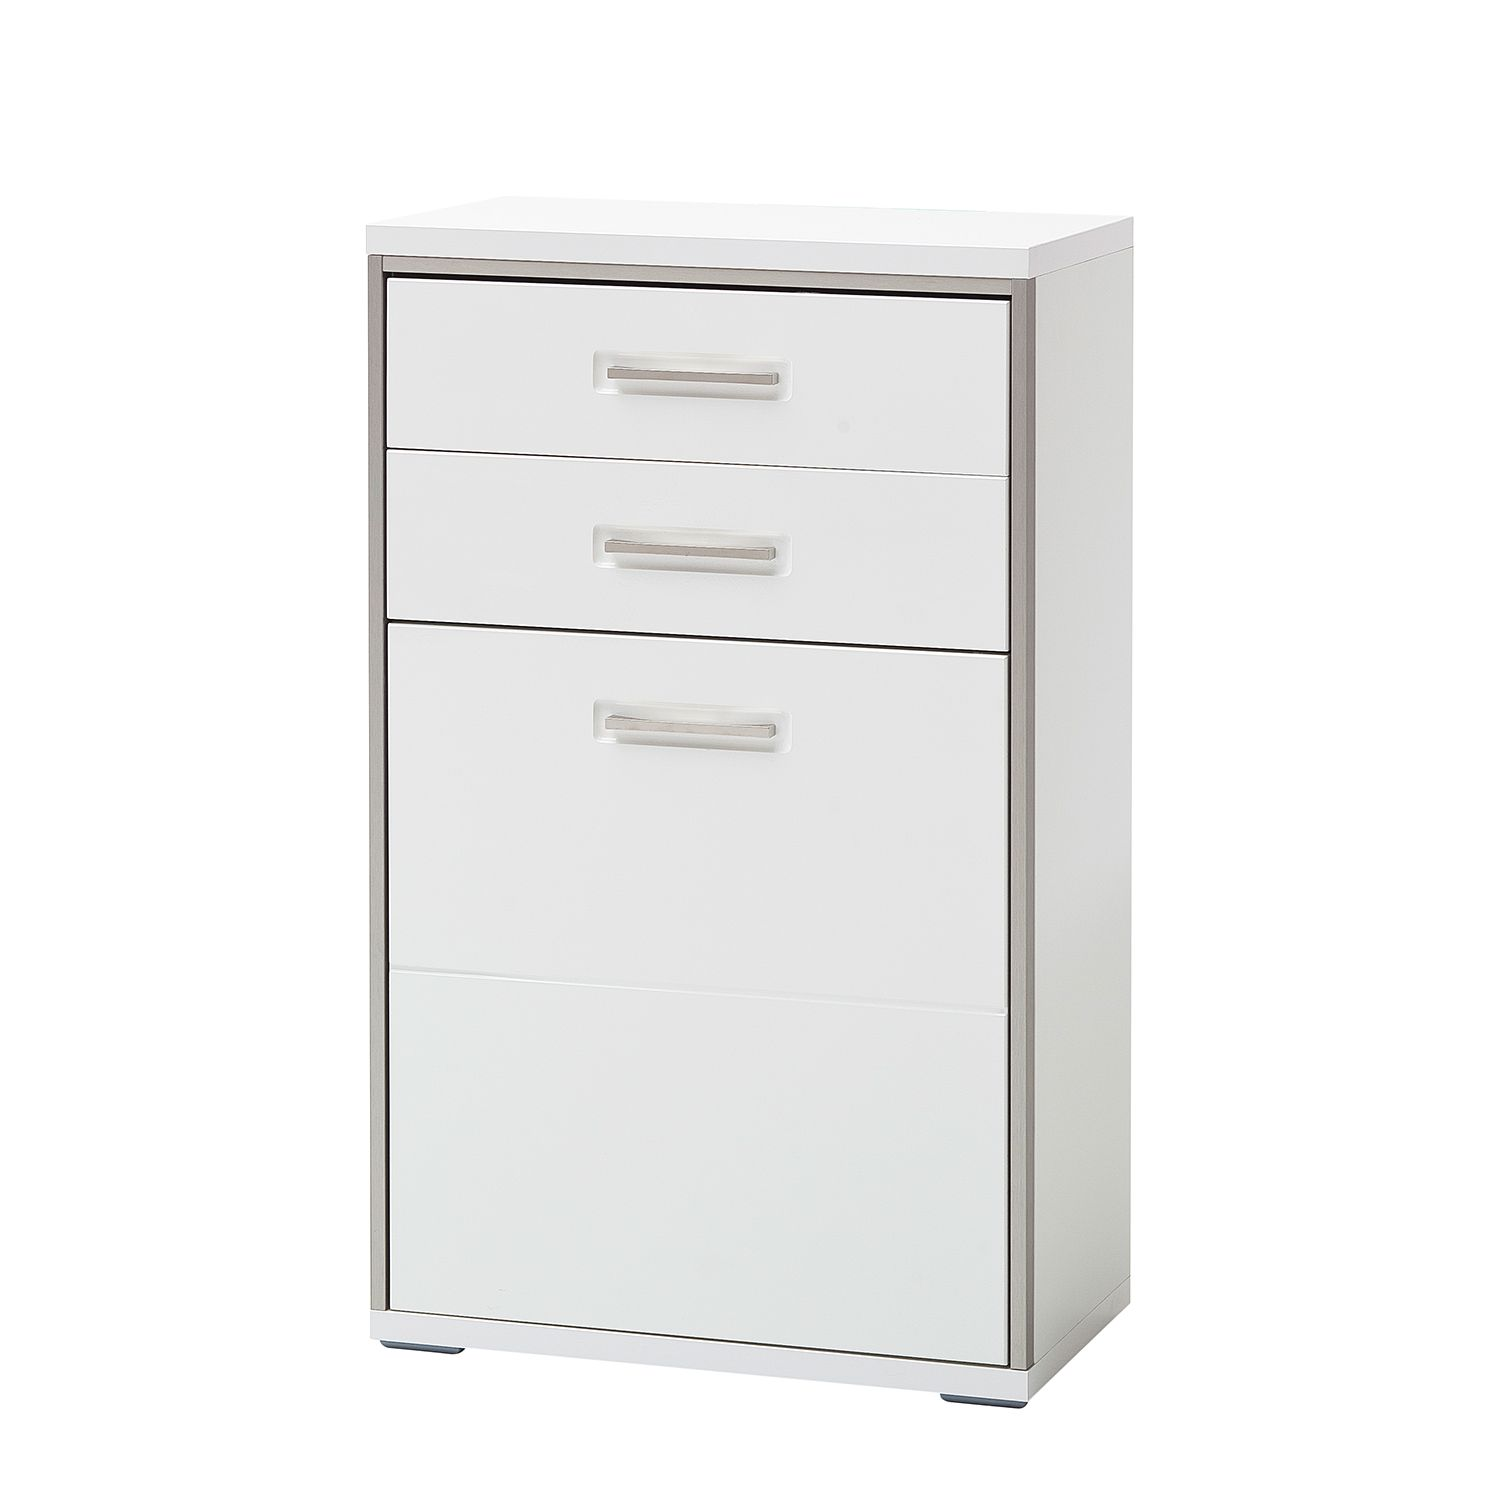 Commode Arco I - hoogglans wit, loftscape